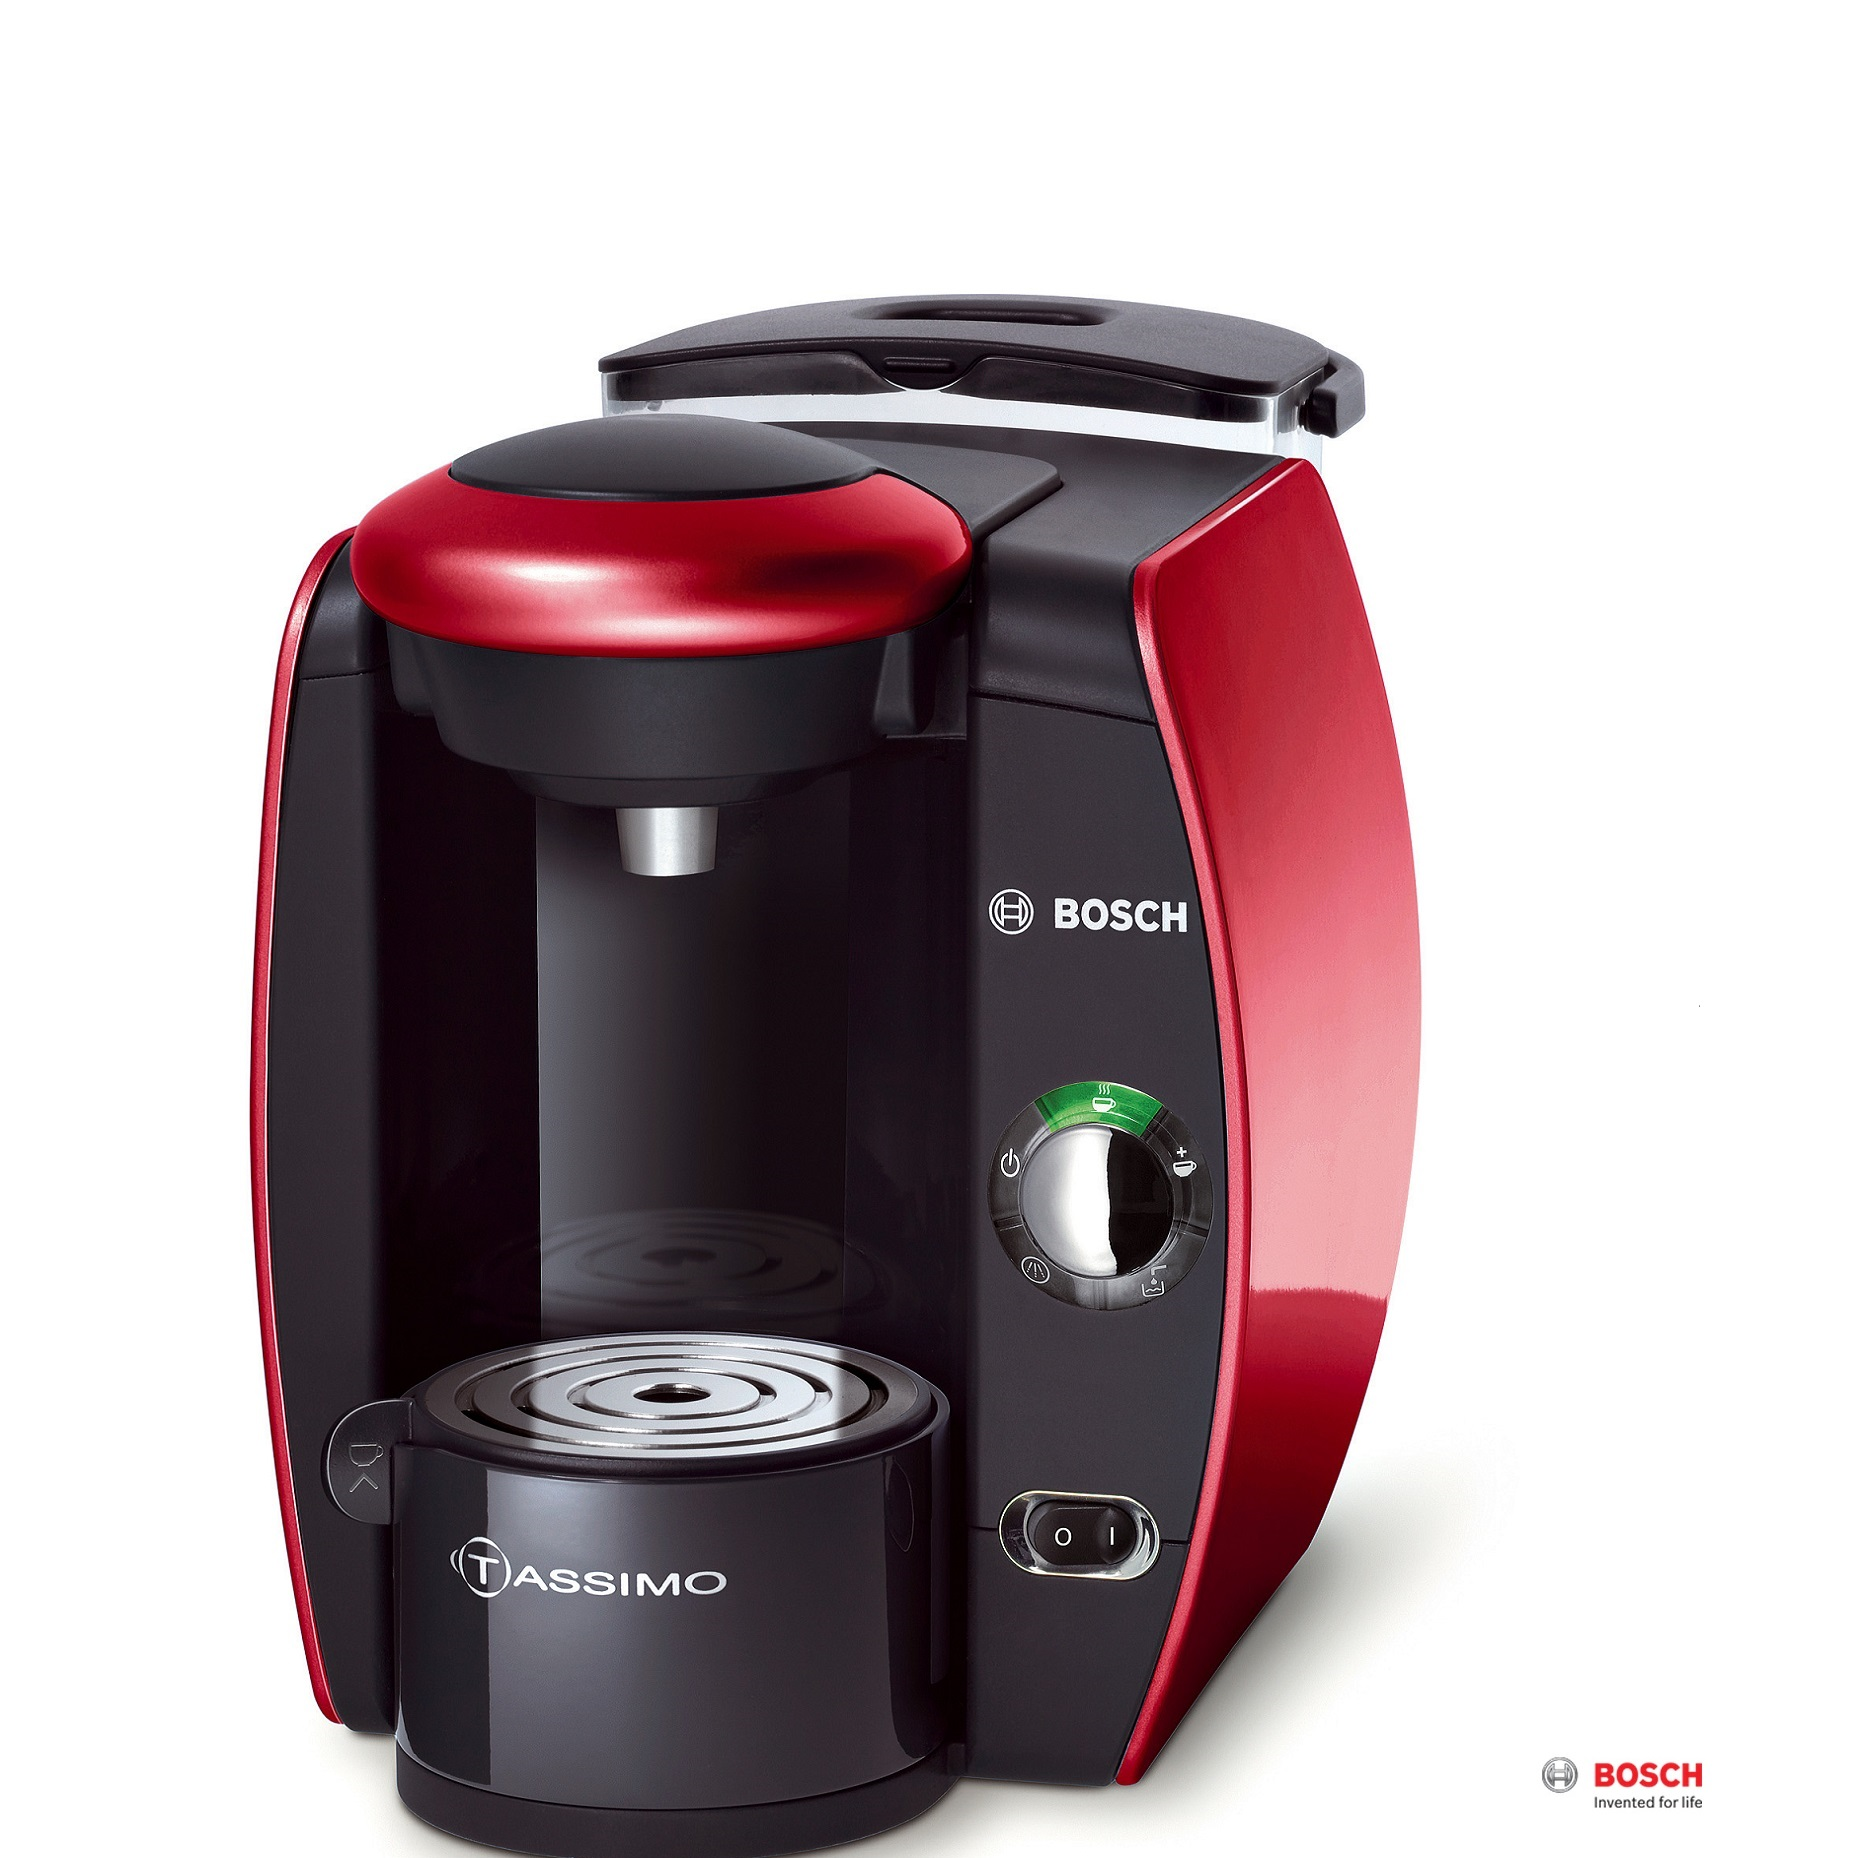 bosch tassimo multi beverage machine red t40 tas4013gb around the clock offers. Black Bedroom Furniture Sets. Home Design Ideas